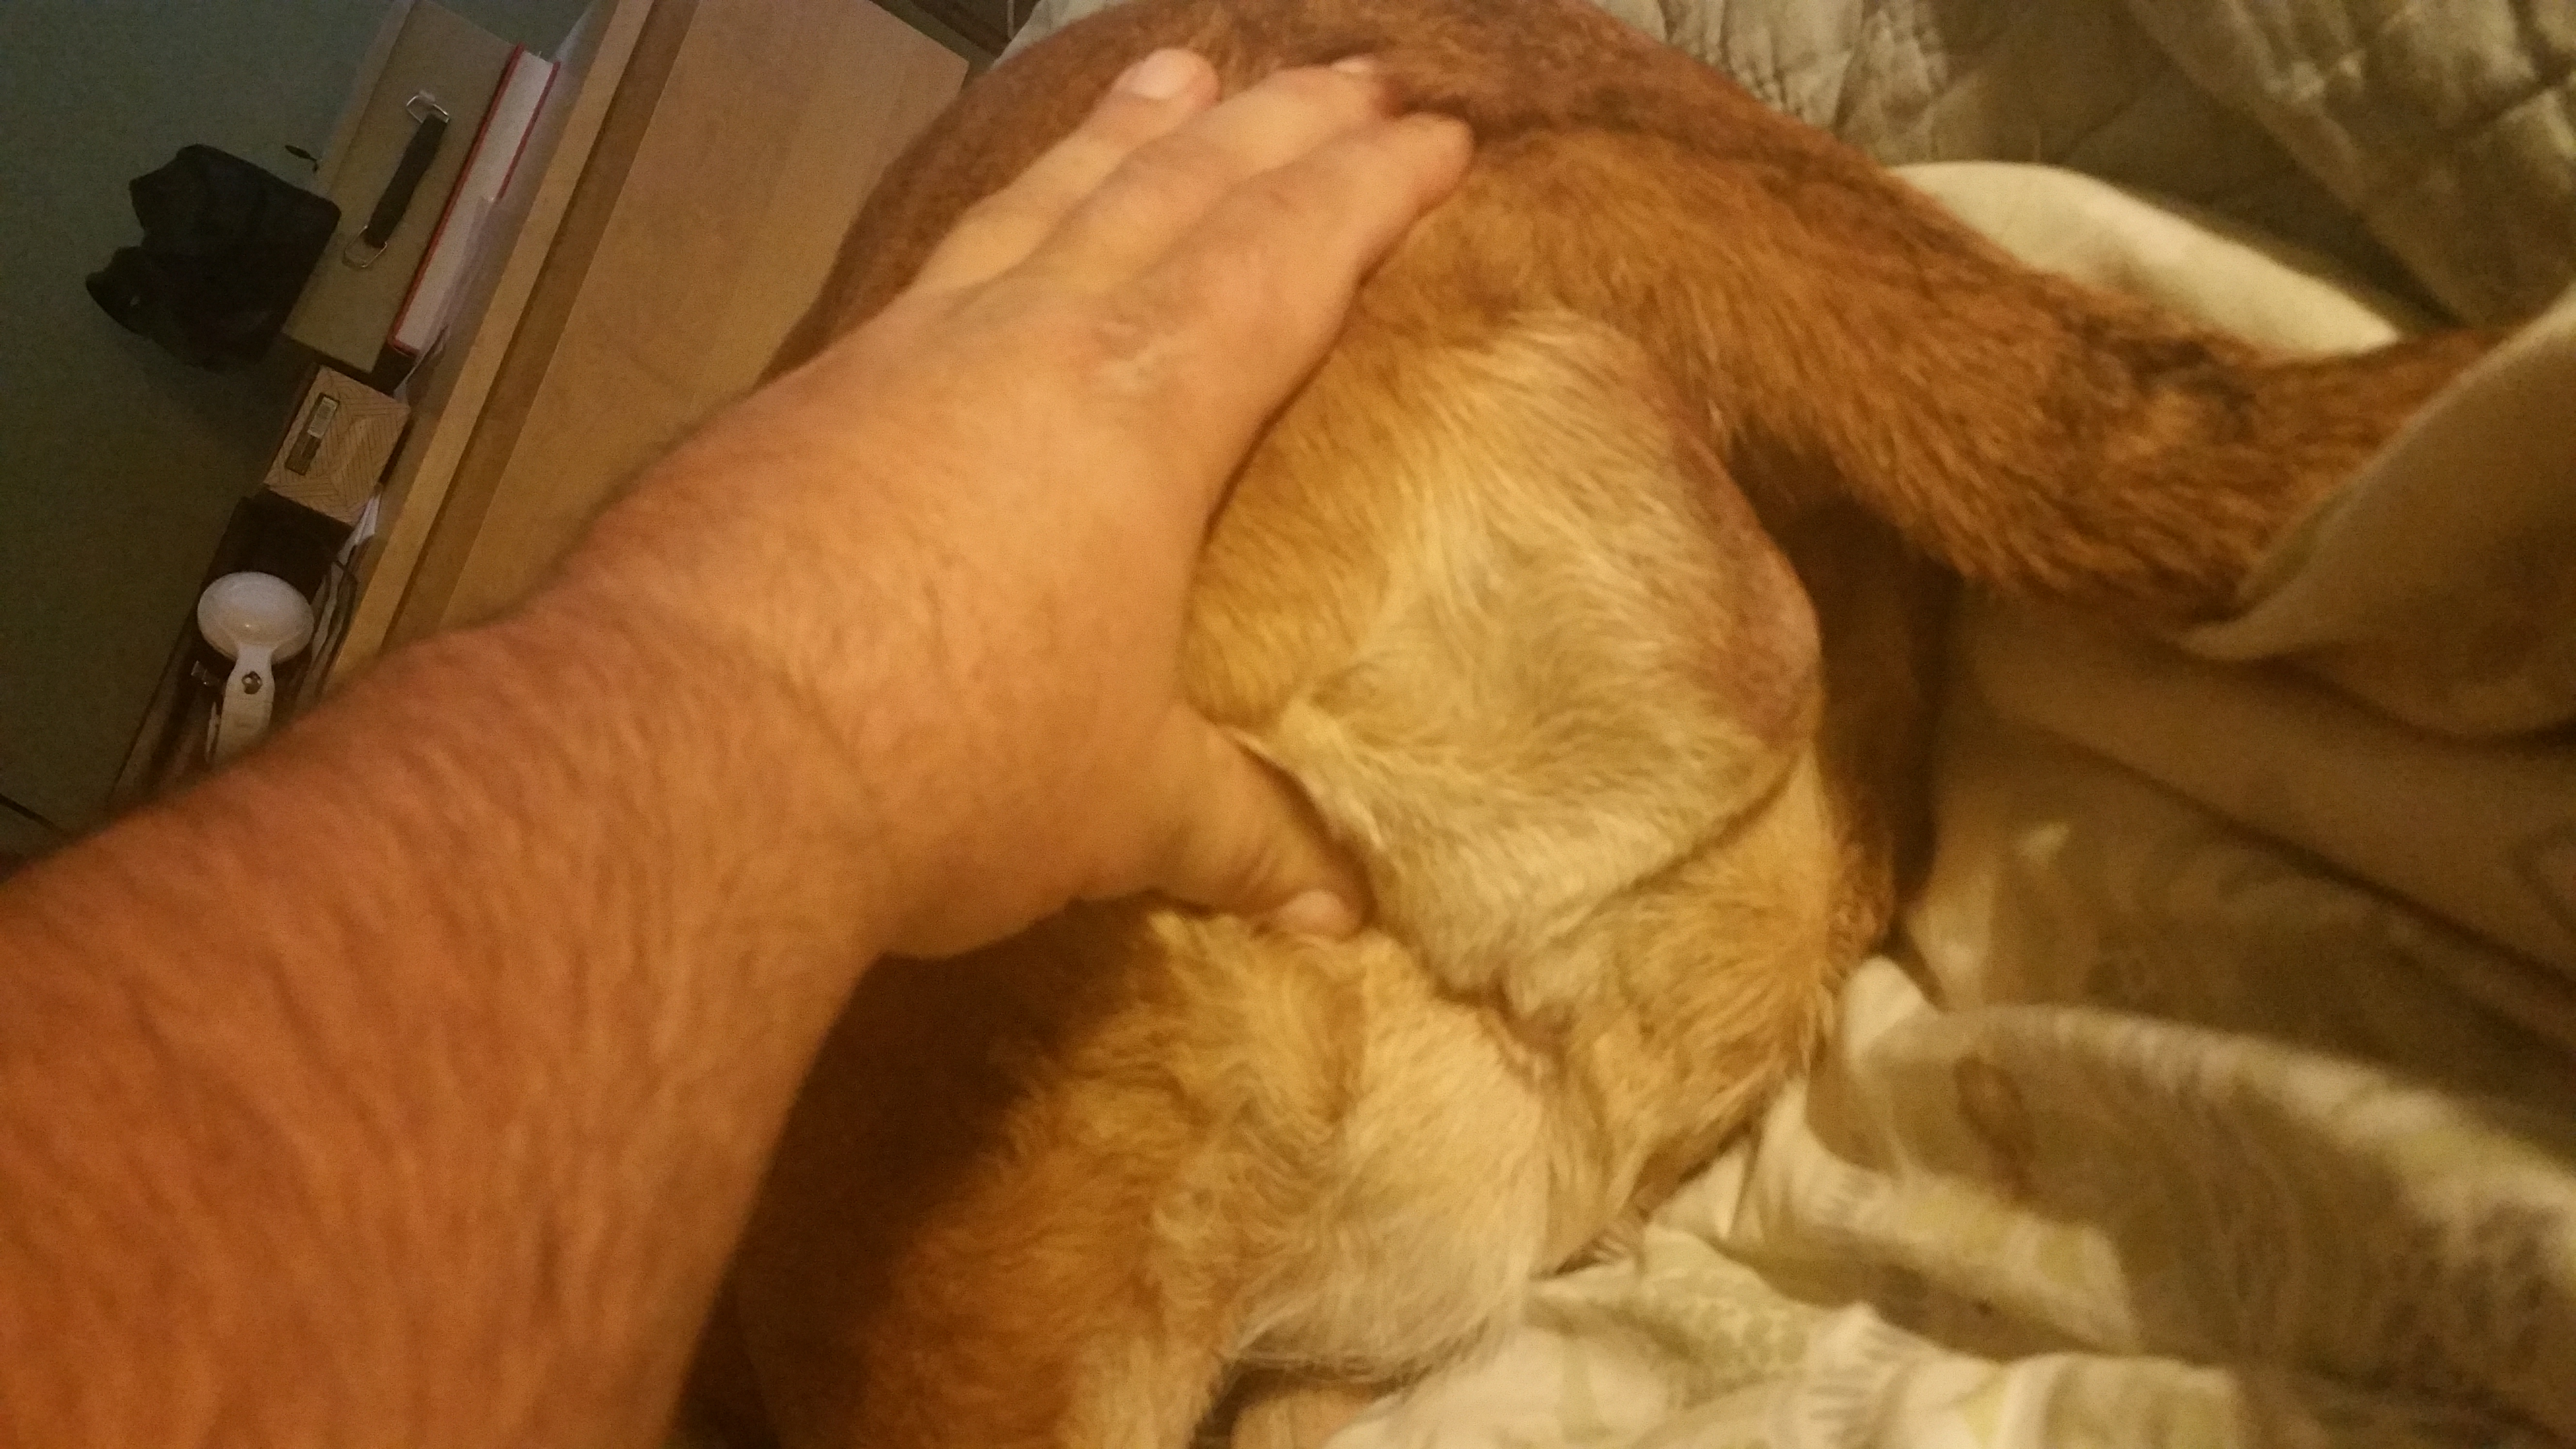 lump on dogs rear end